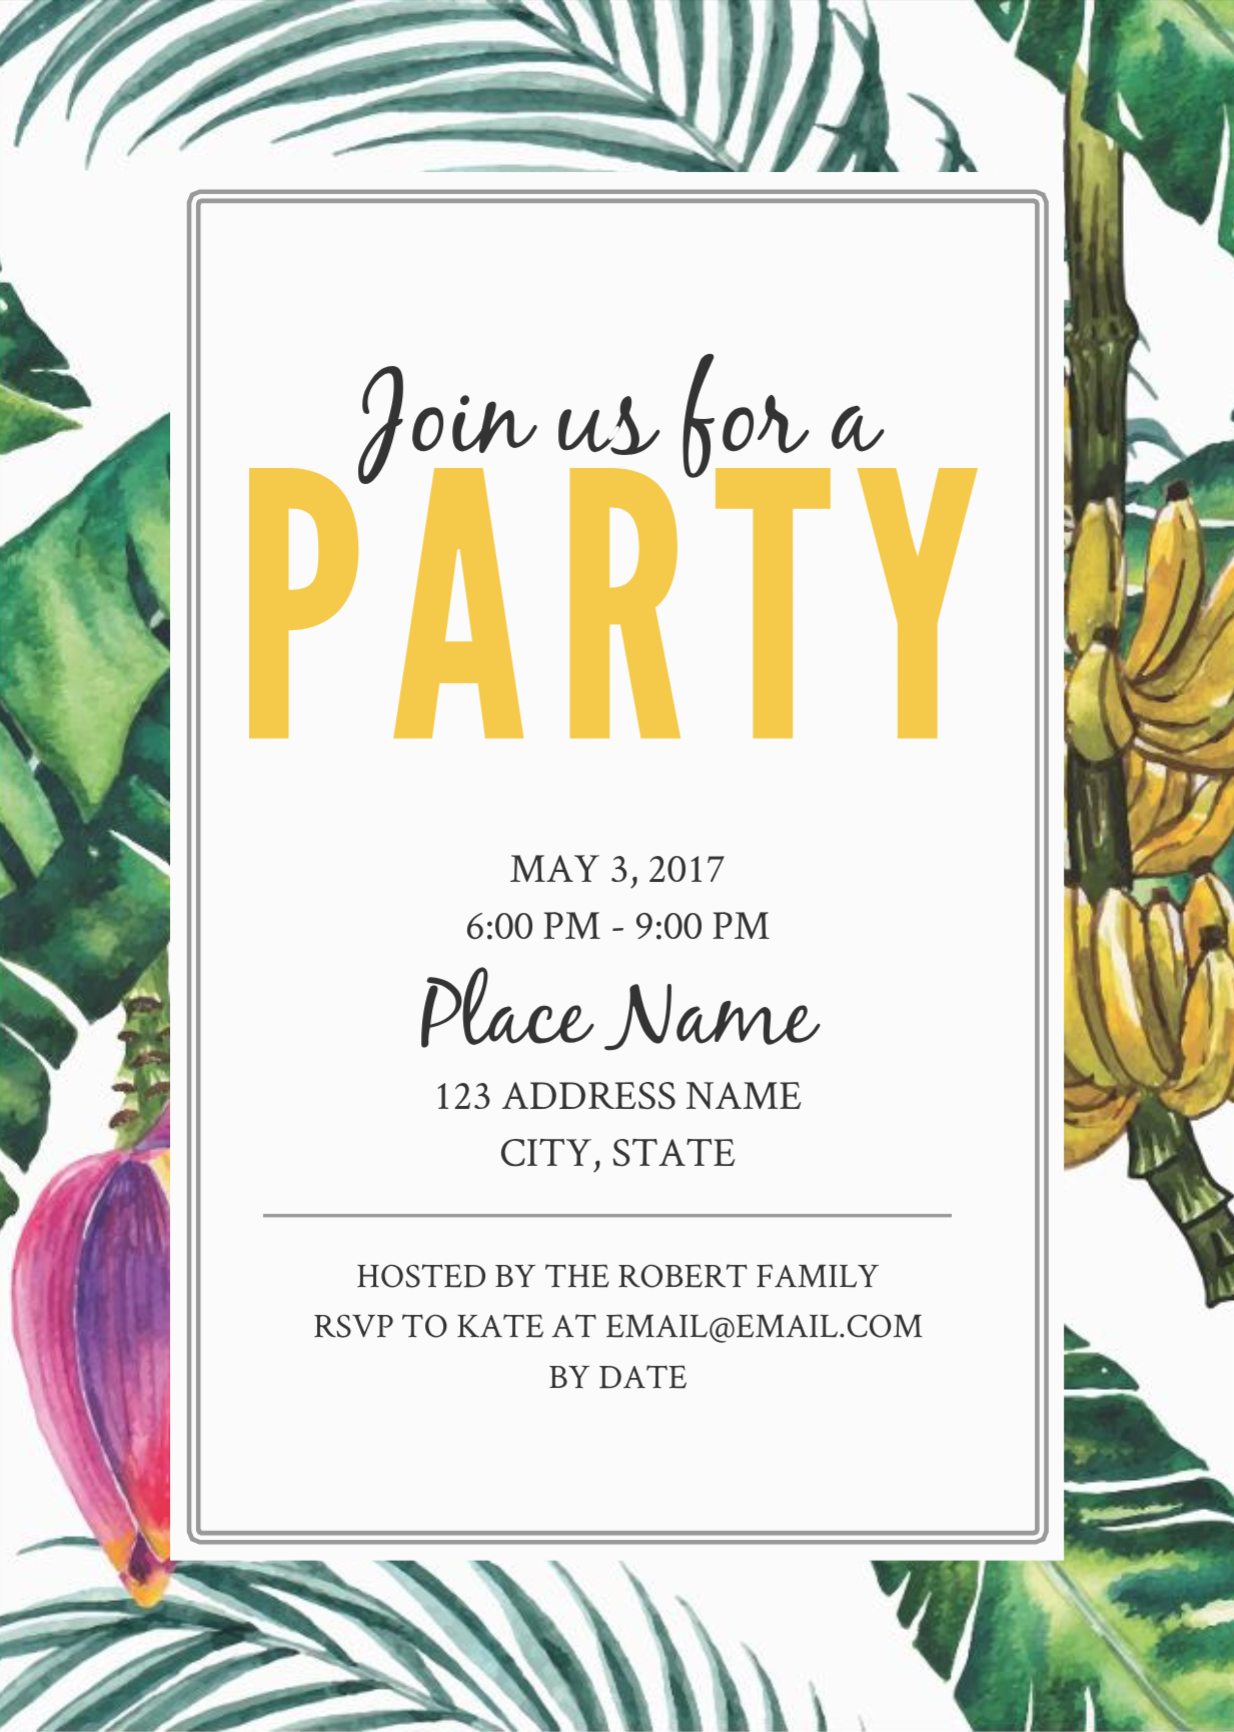 Jungle Party Invitation Template  Customize this invitation